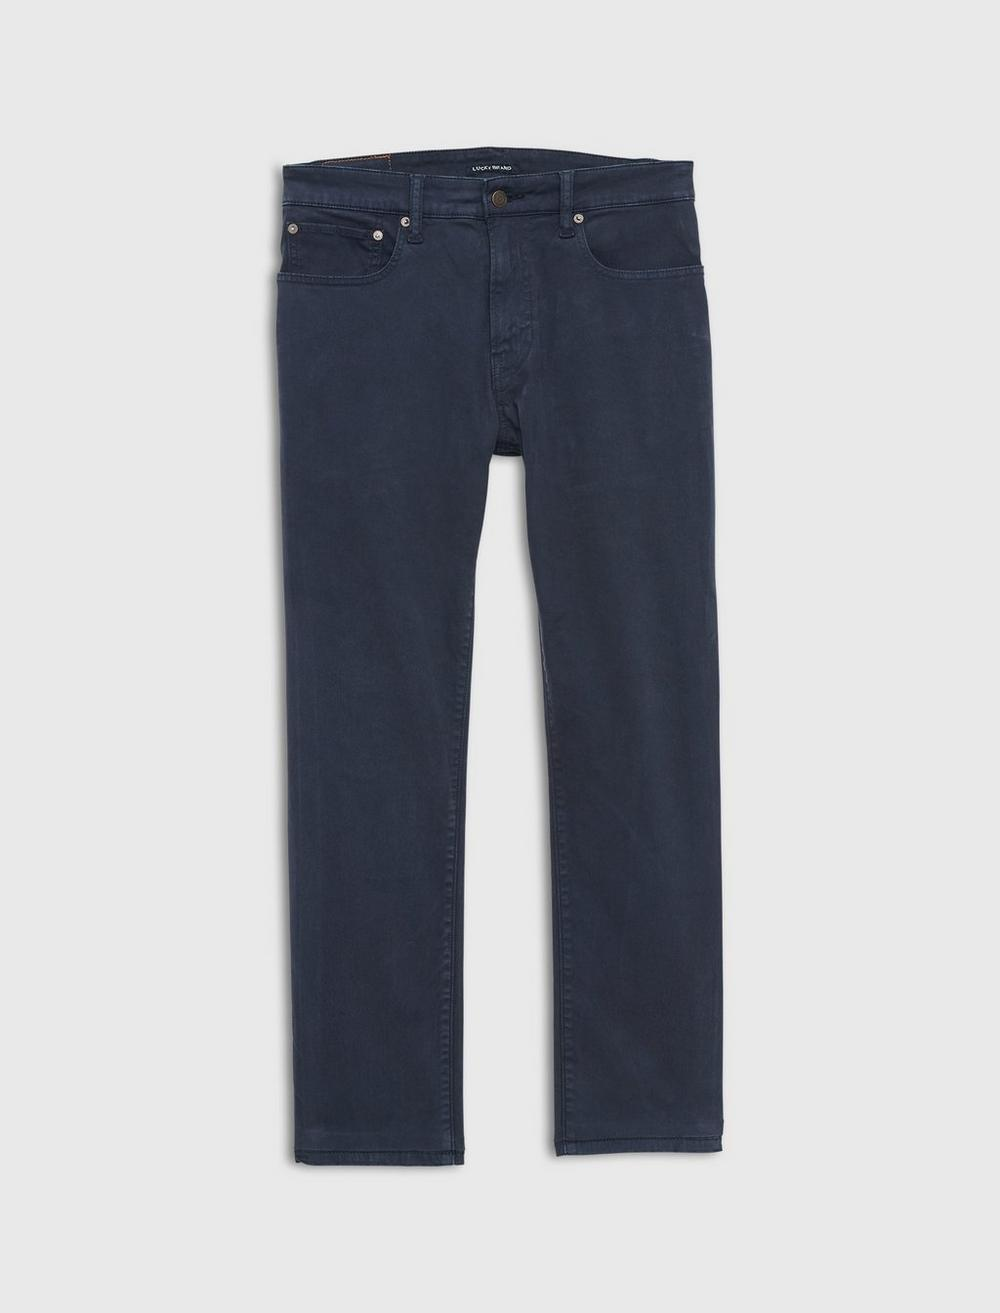 223 STRAIGHT SATEEN STRETCH JEAN, image 5